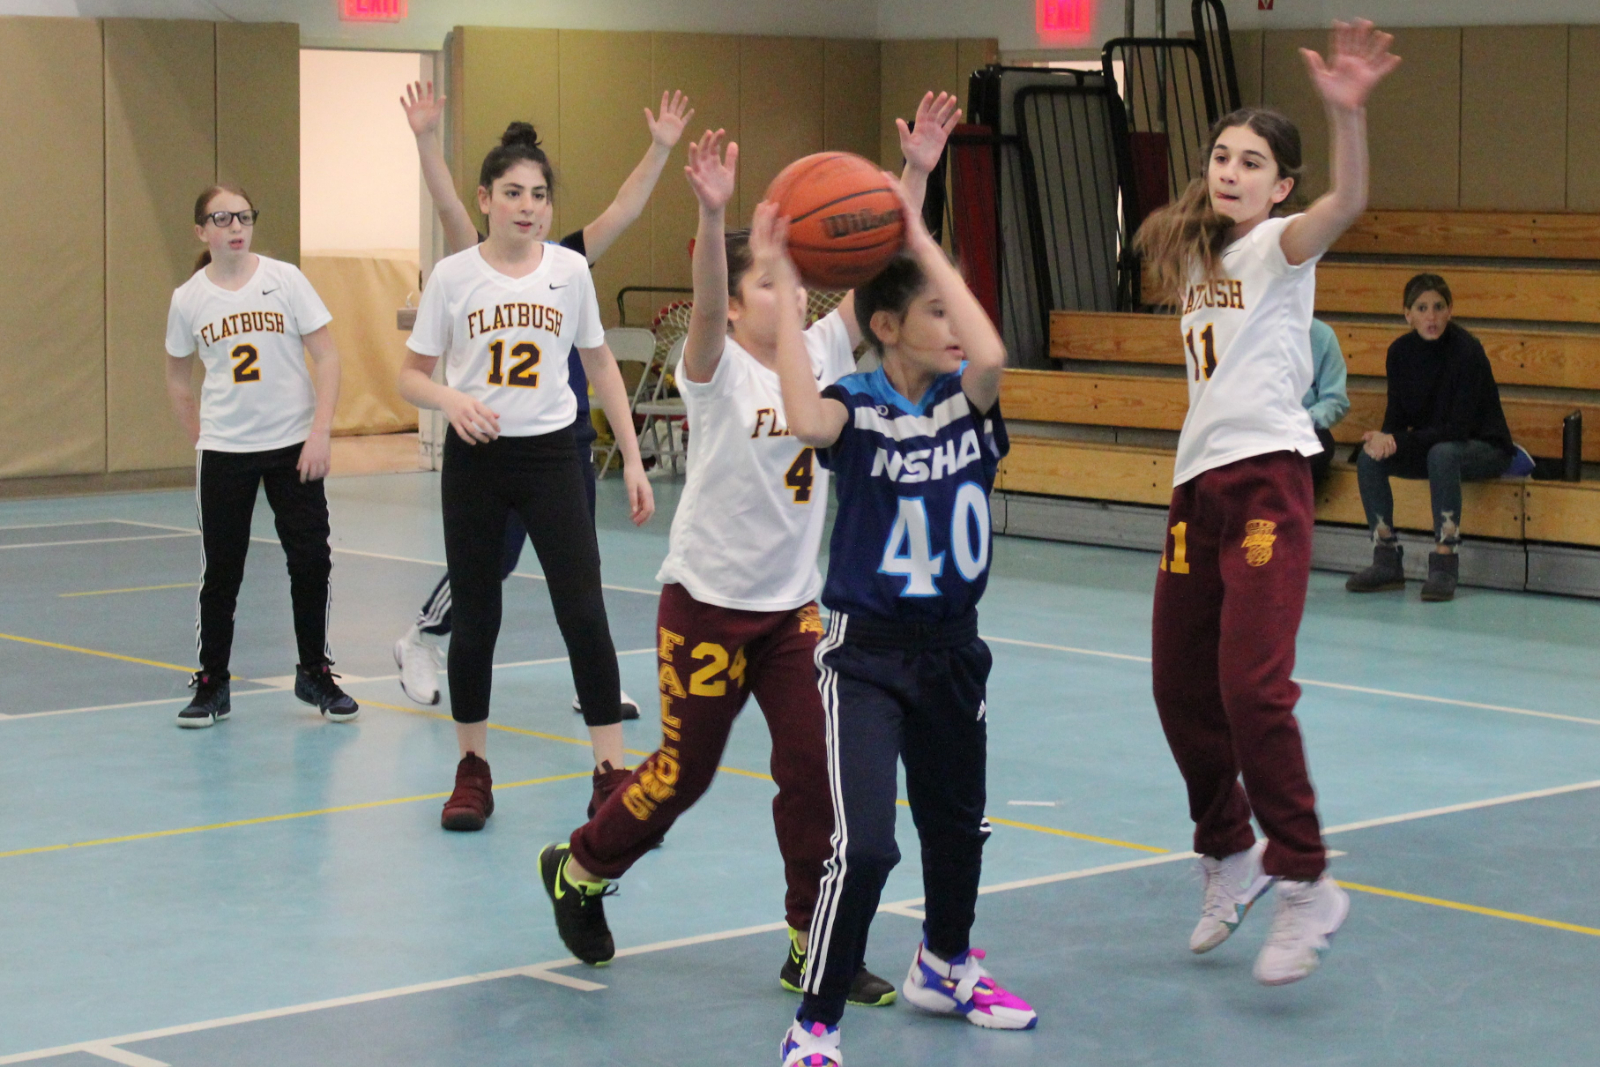 Tough Day for Girls/Boys 6th Grade Basketball Teams